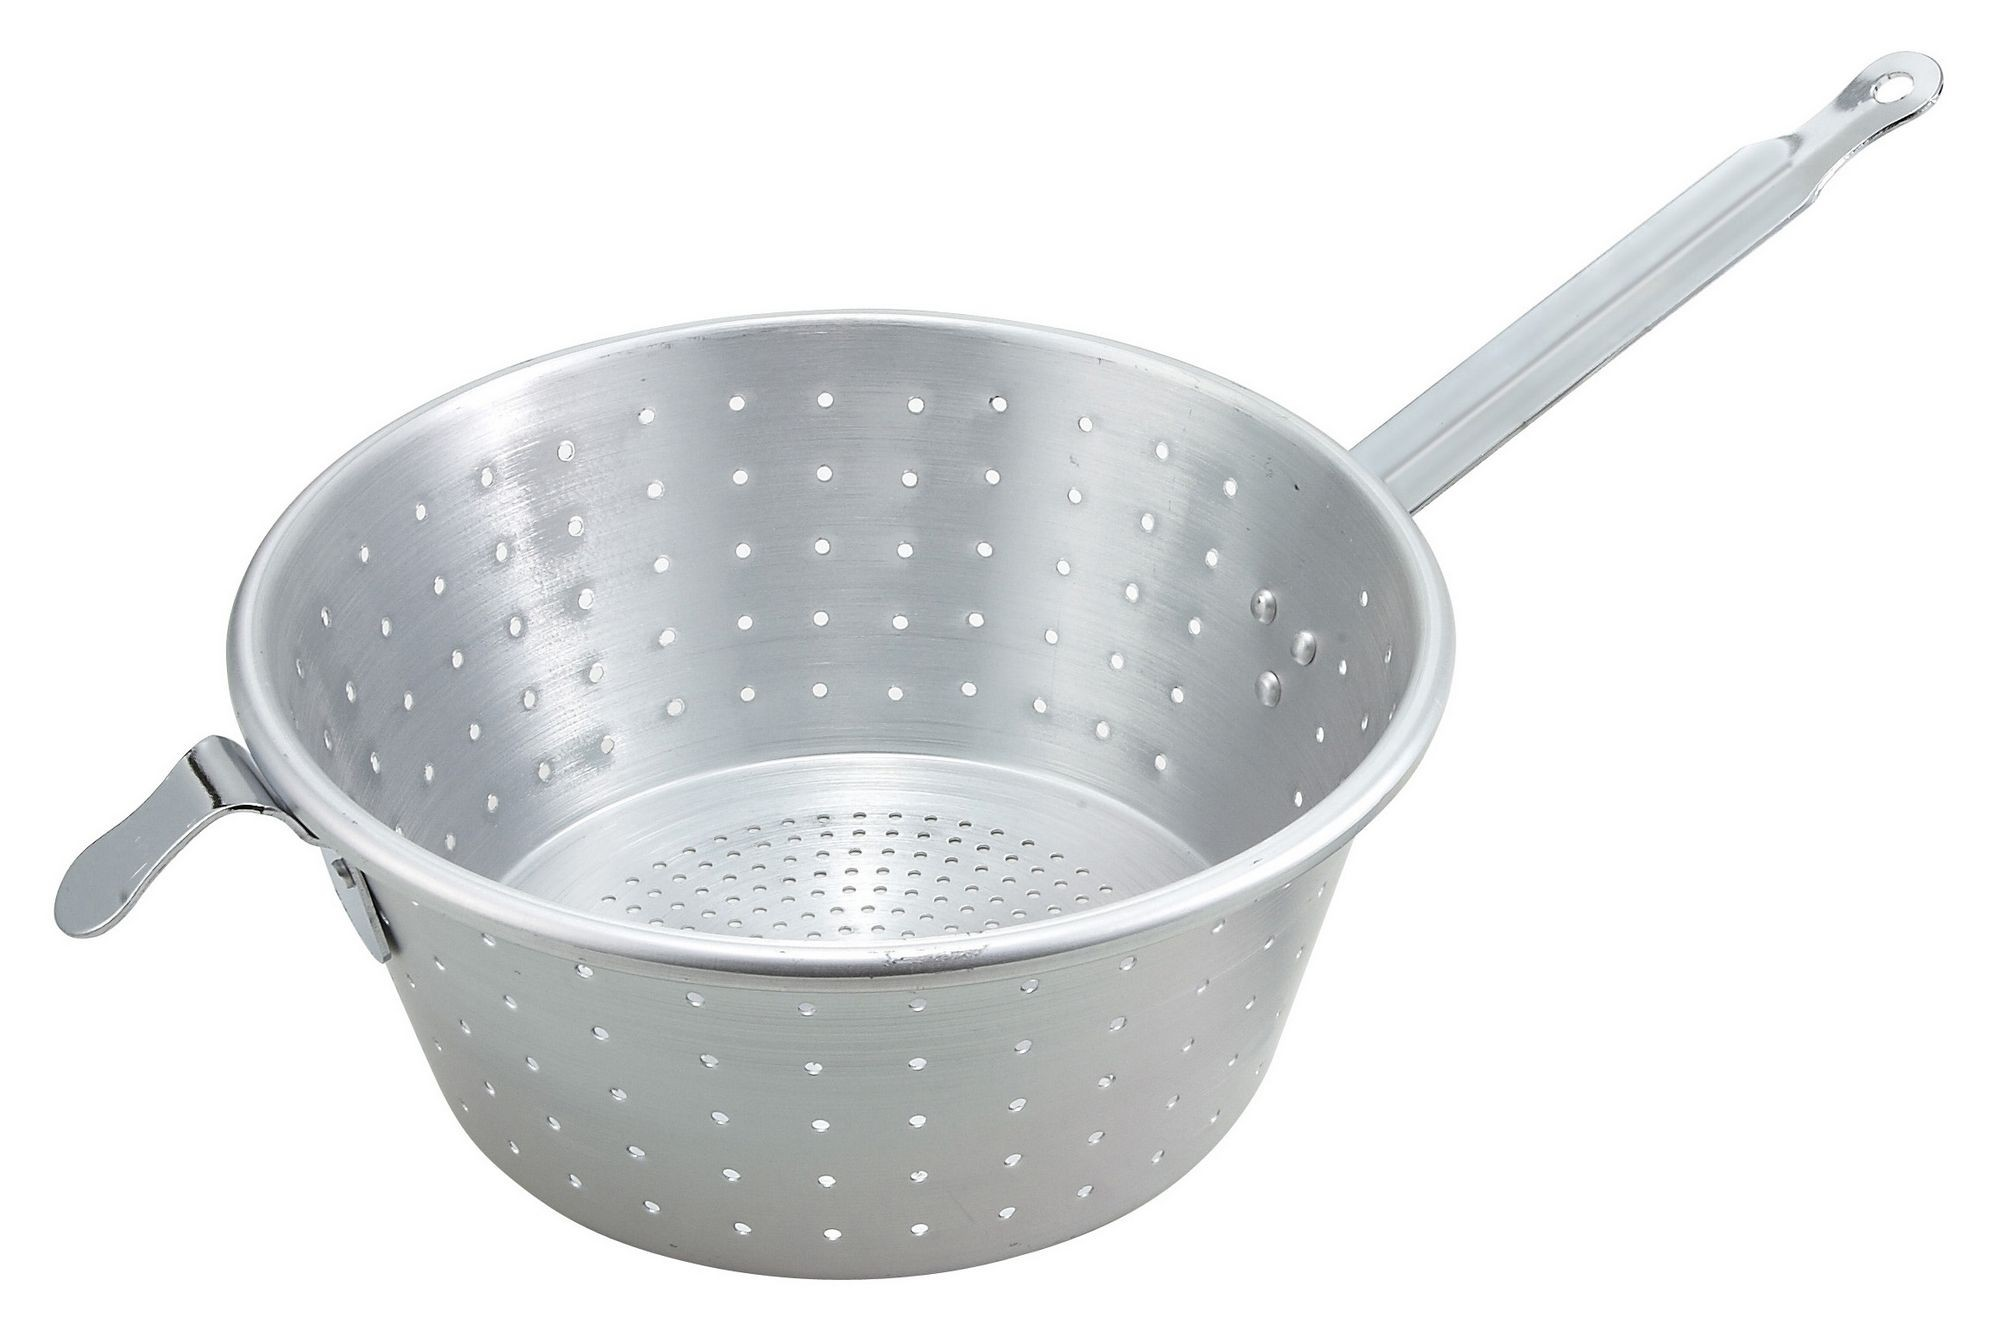 Winco ASS-09 Aluminum Spaghetti Strainer with Handle 9